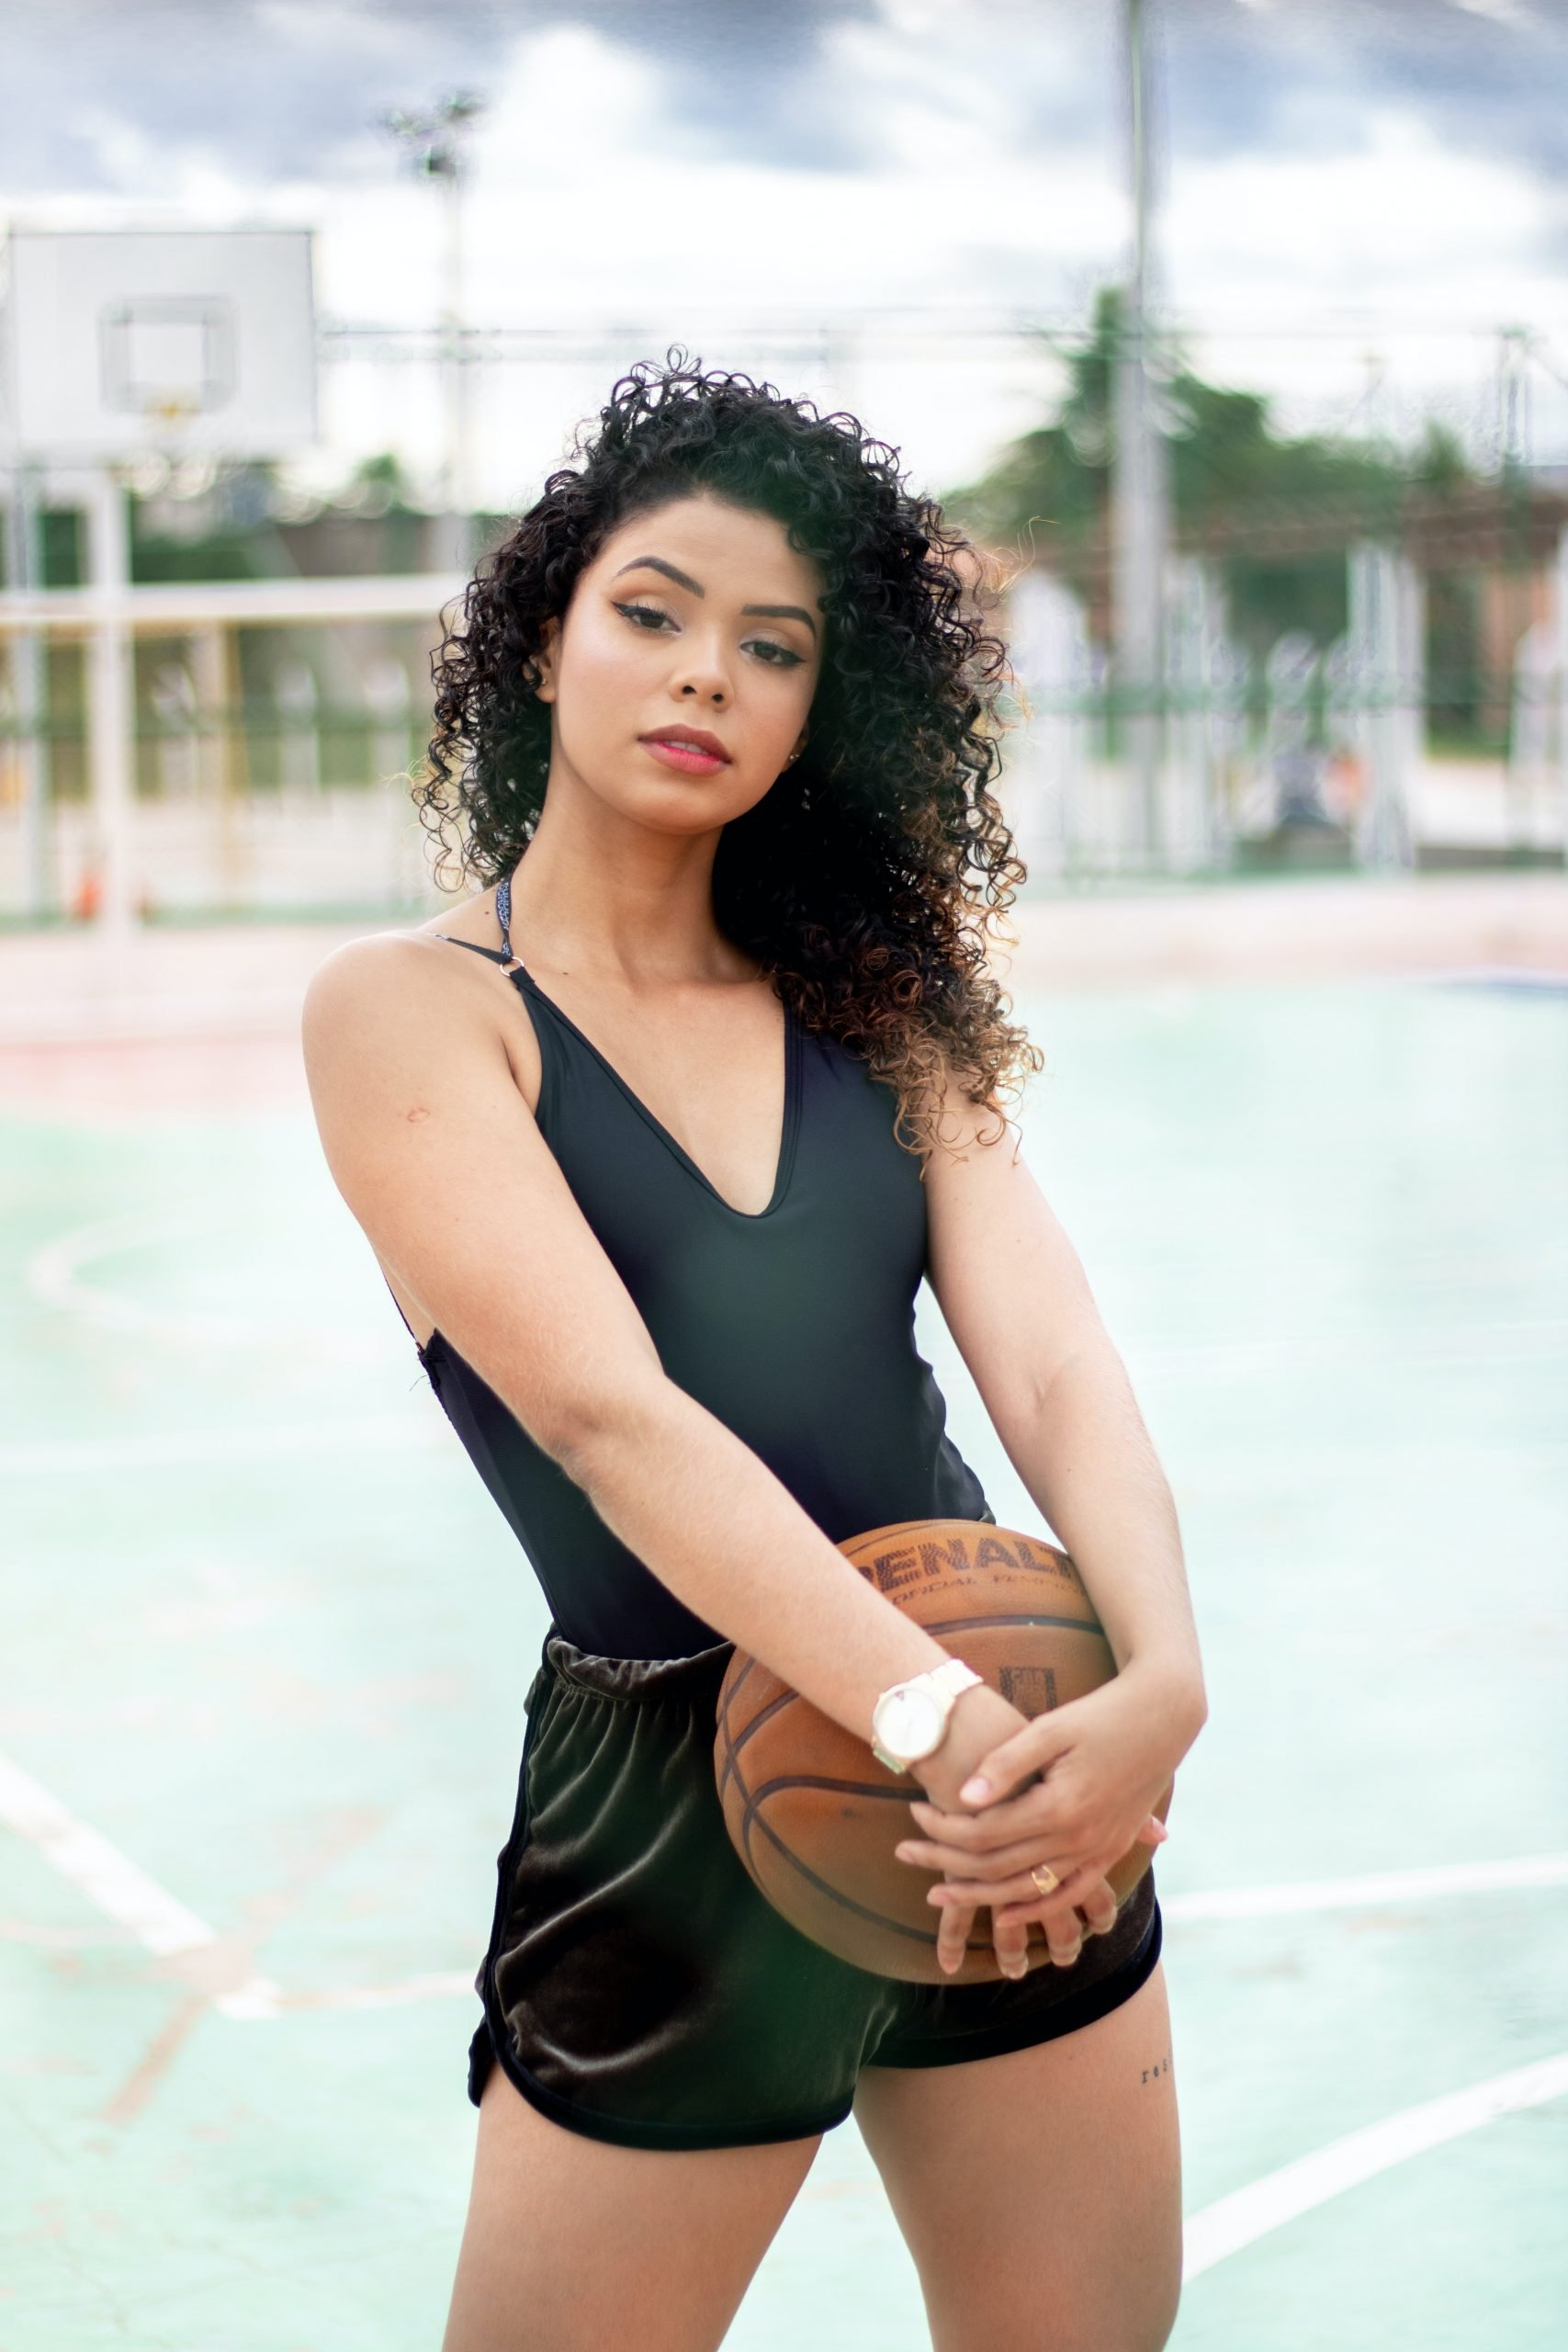 woman-with-curly-hair-extensions-holding-basketball